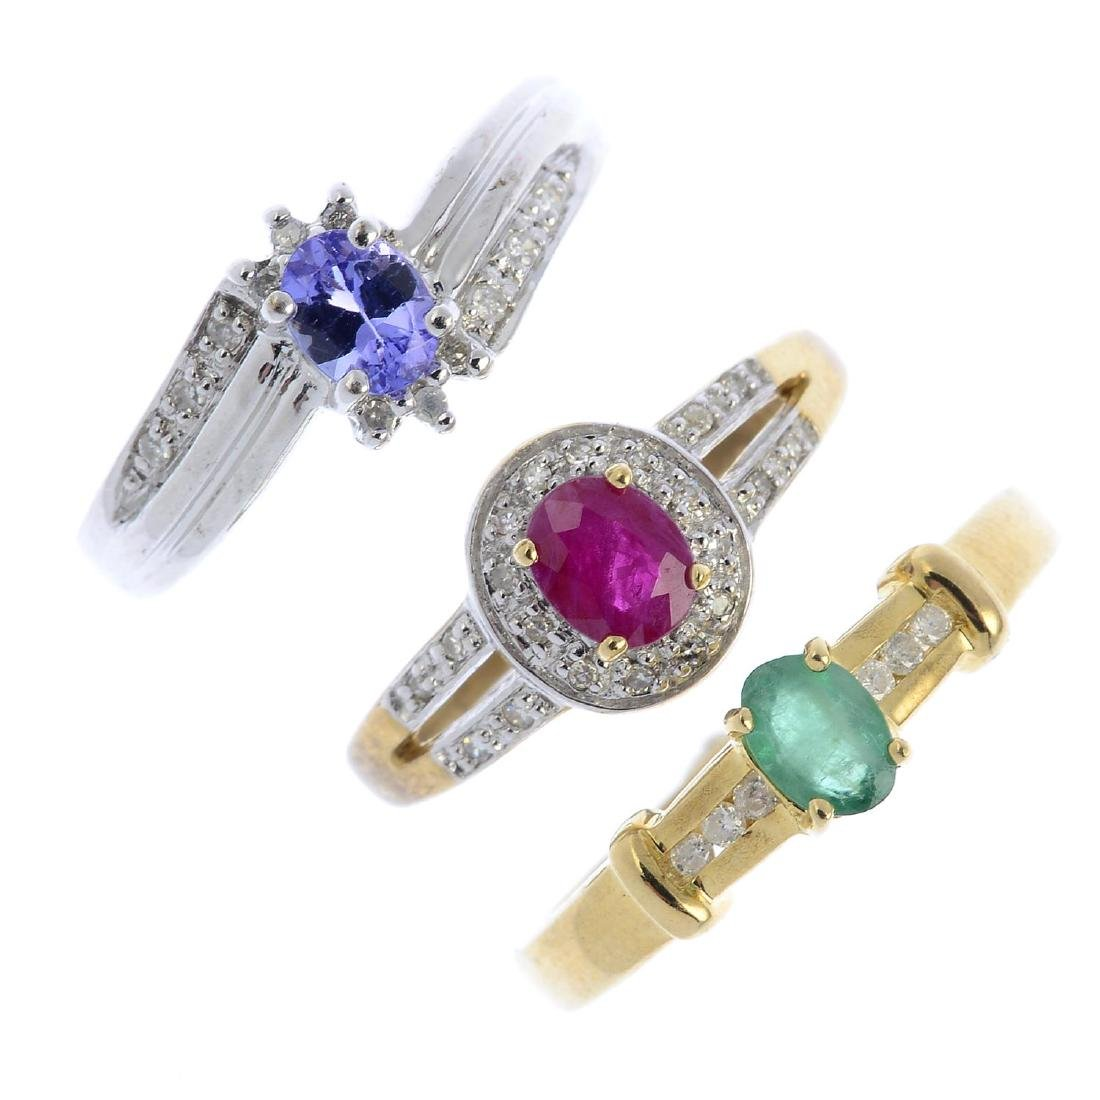 Seven 9ct gold diamond and gem-set rings. To include a